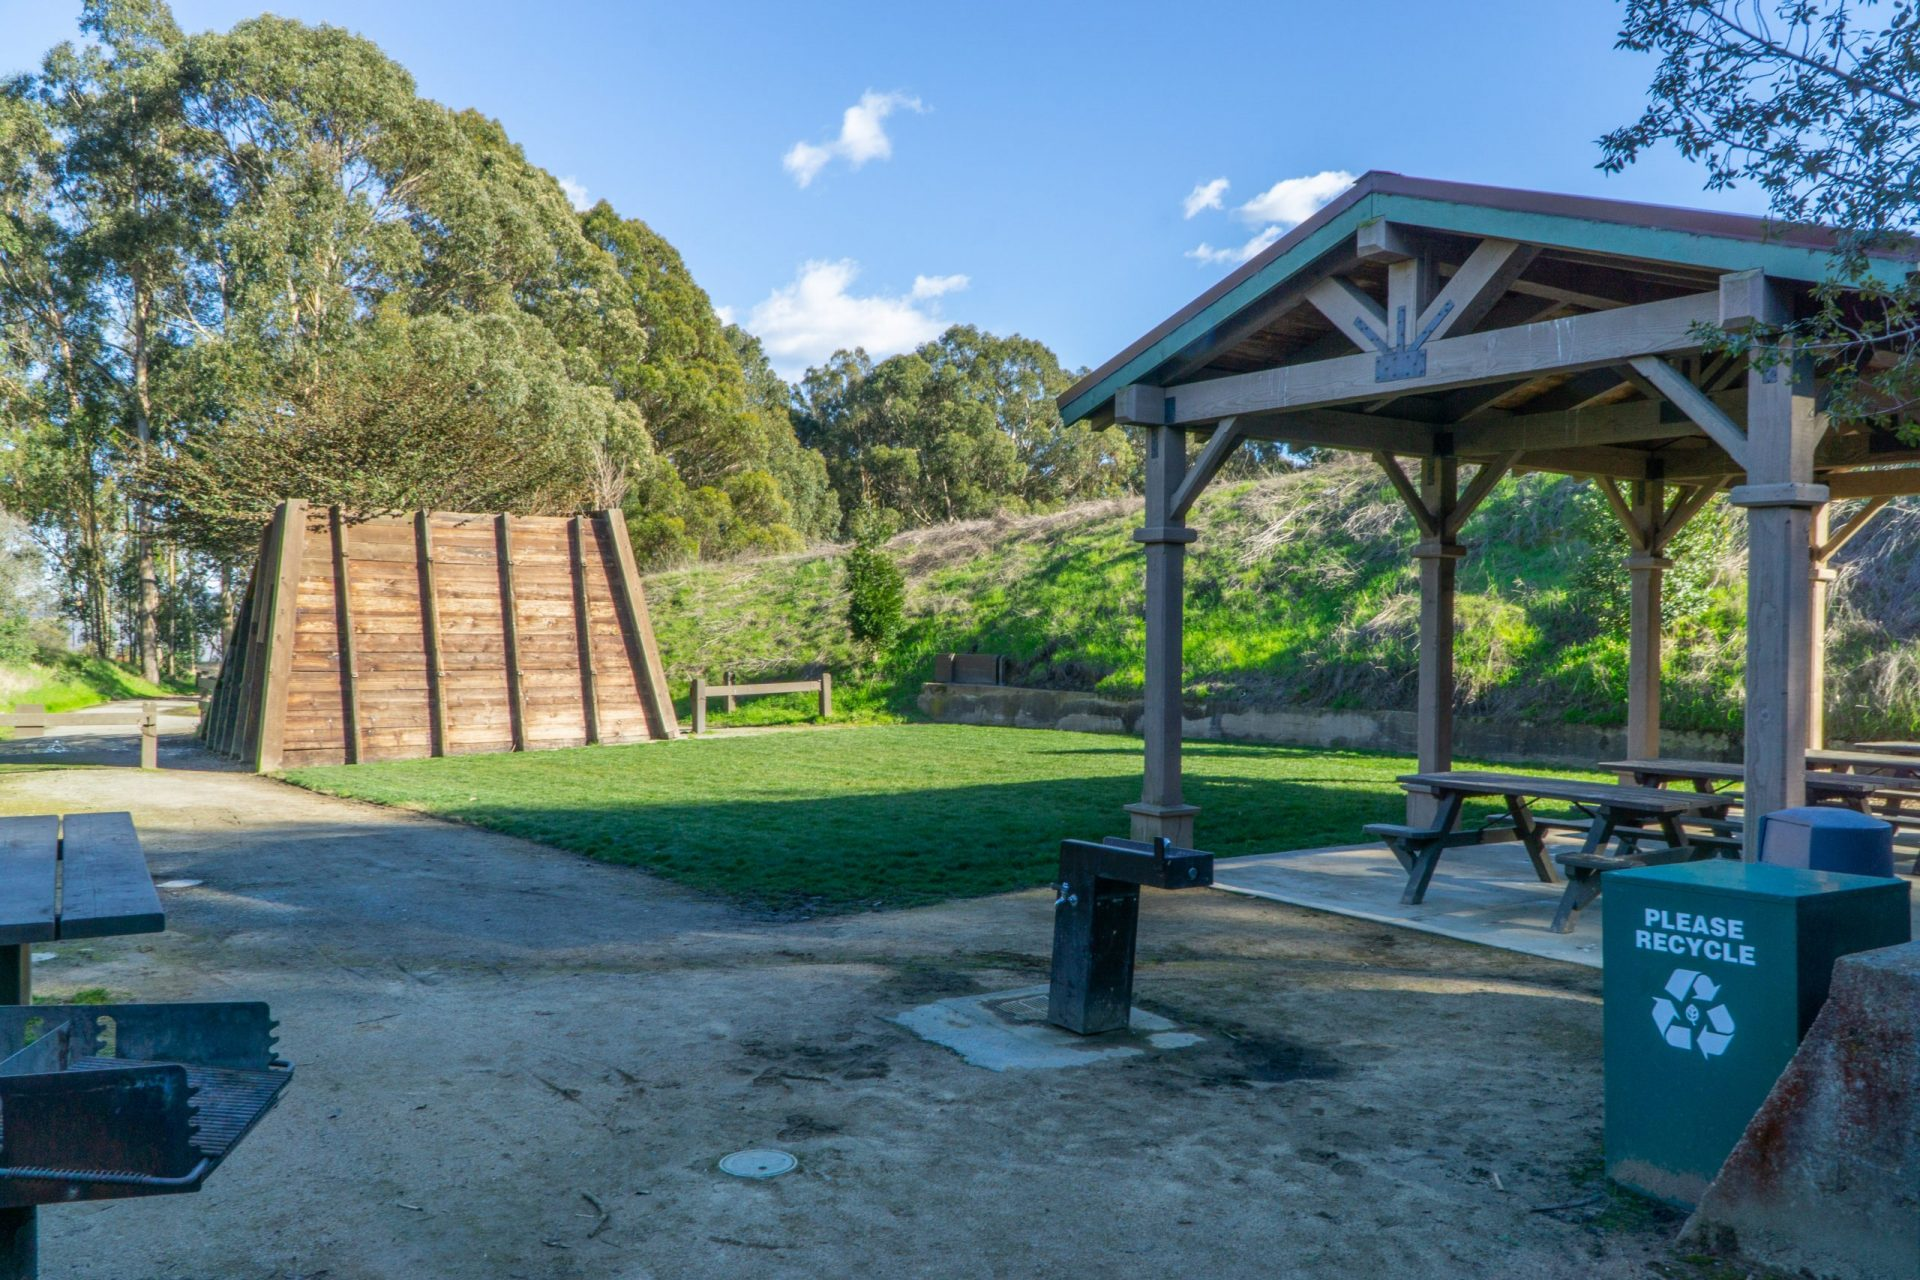 Campground with covered picnic tables, water fountain, and trashcan